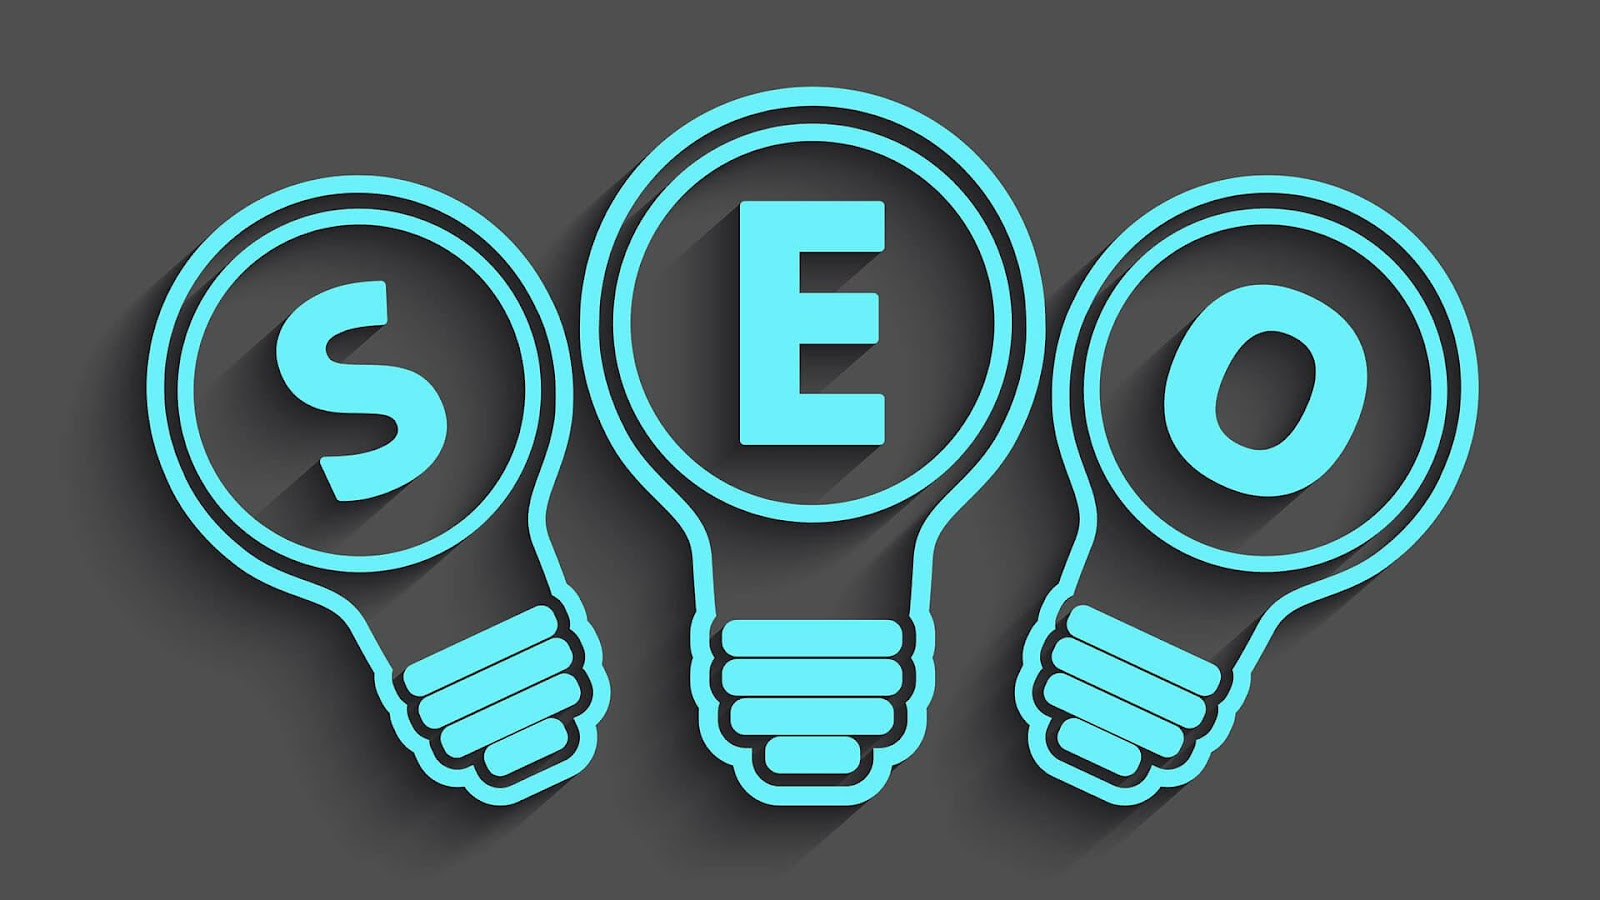 SEO: Search Engine Optimization - The process of linking other websites to link to your webpages is known as Link Building. Links can act as votes or some other people vouching for your website by sharing their good experience with your website. And Link building is regarded as one of the most reliable strategies of creating SEO-friendly content.